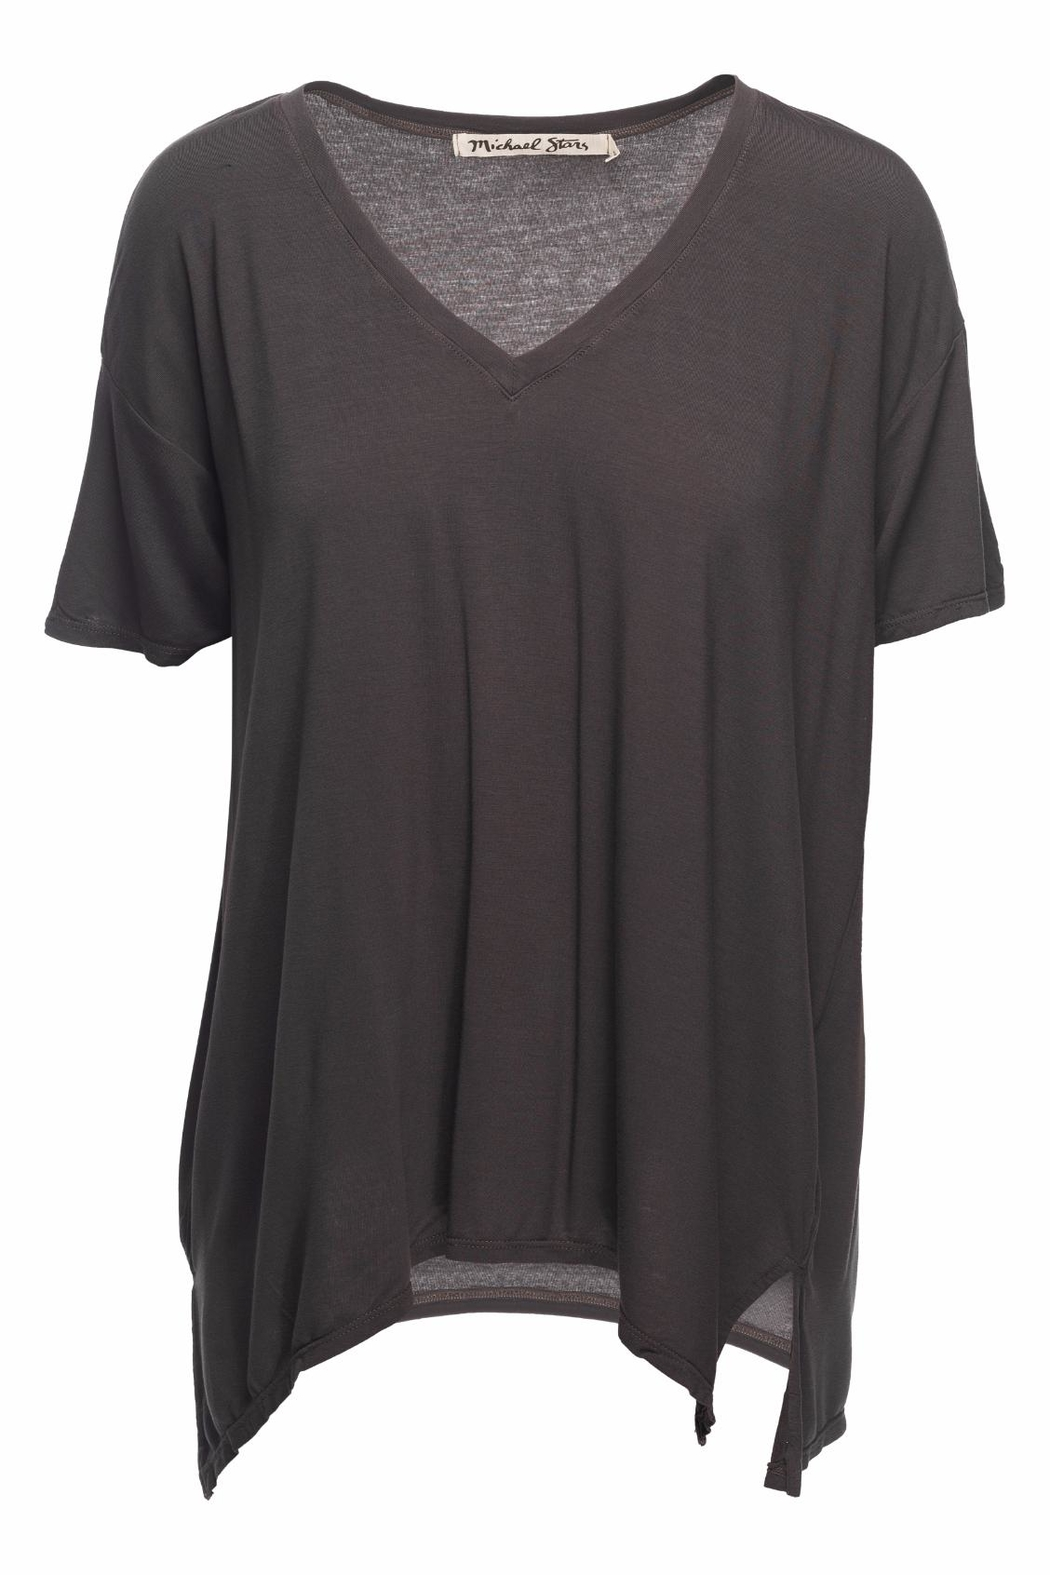 Michael Stars Layla Basic Top - Front Cropped Image